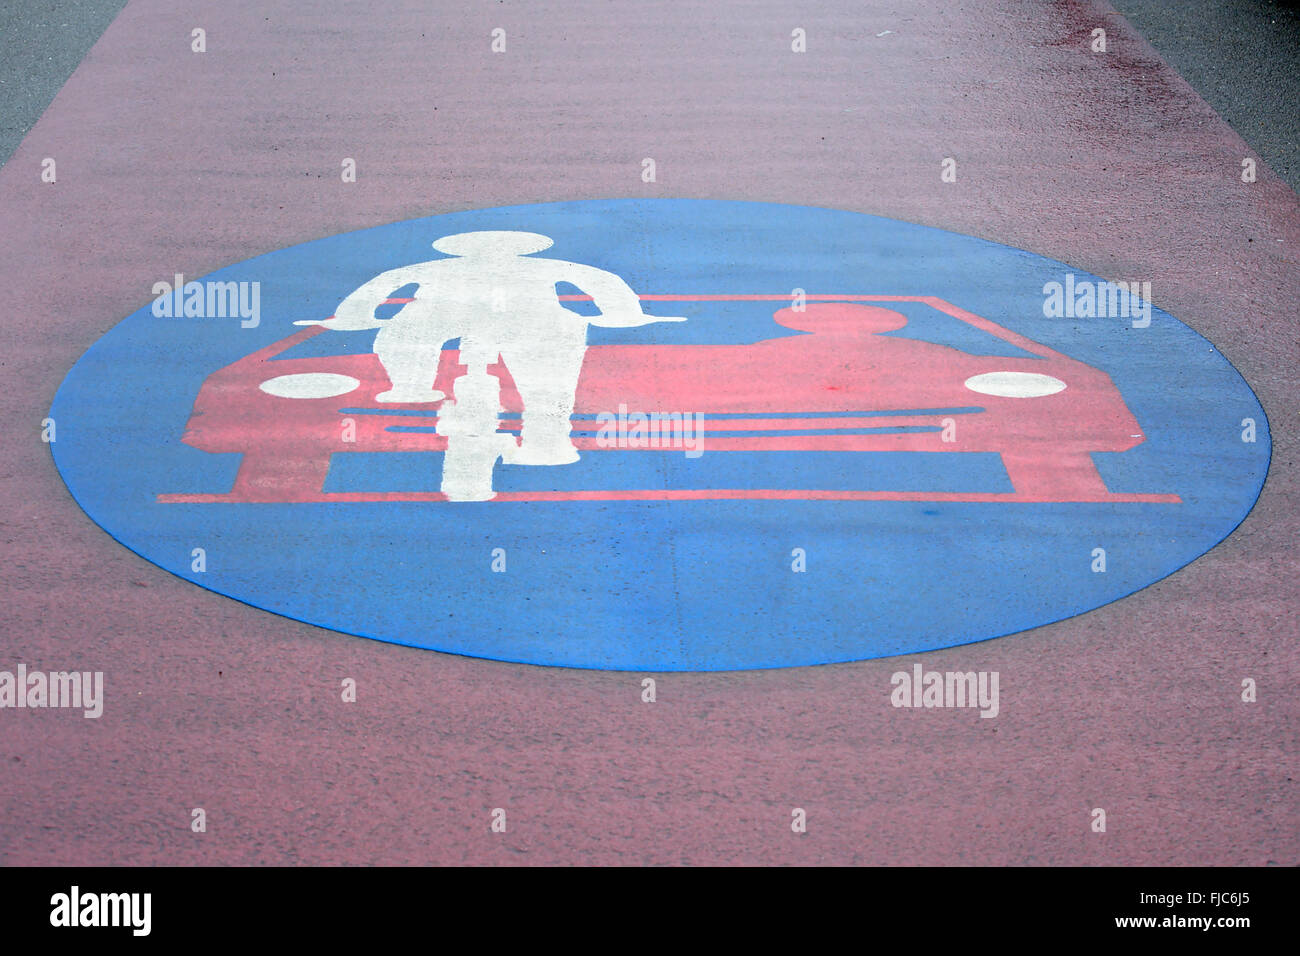 Painted red and blue bicycle priority lane sign - Stock Image